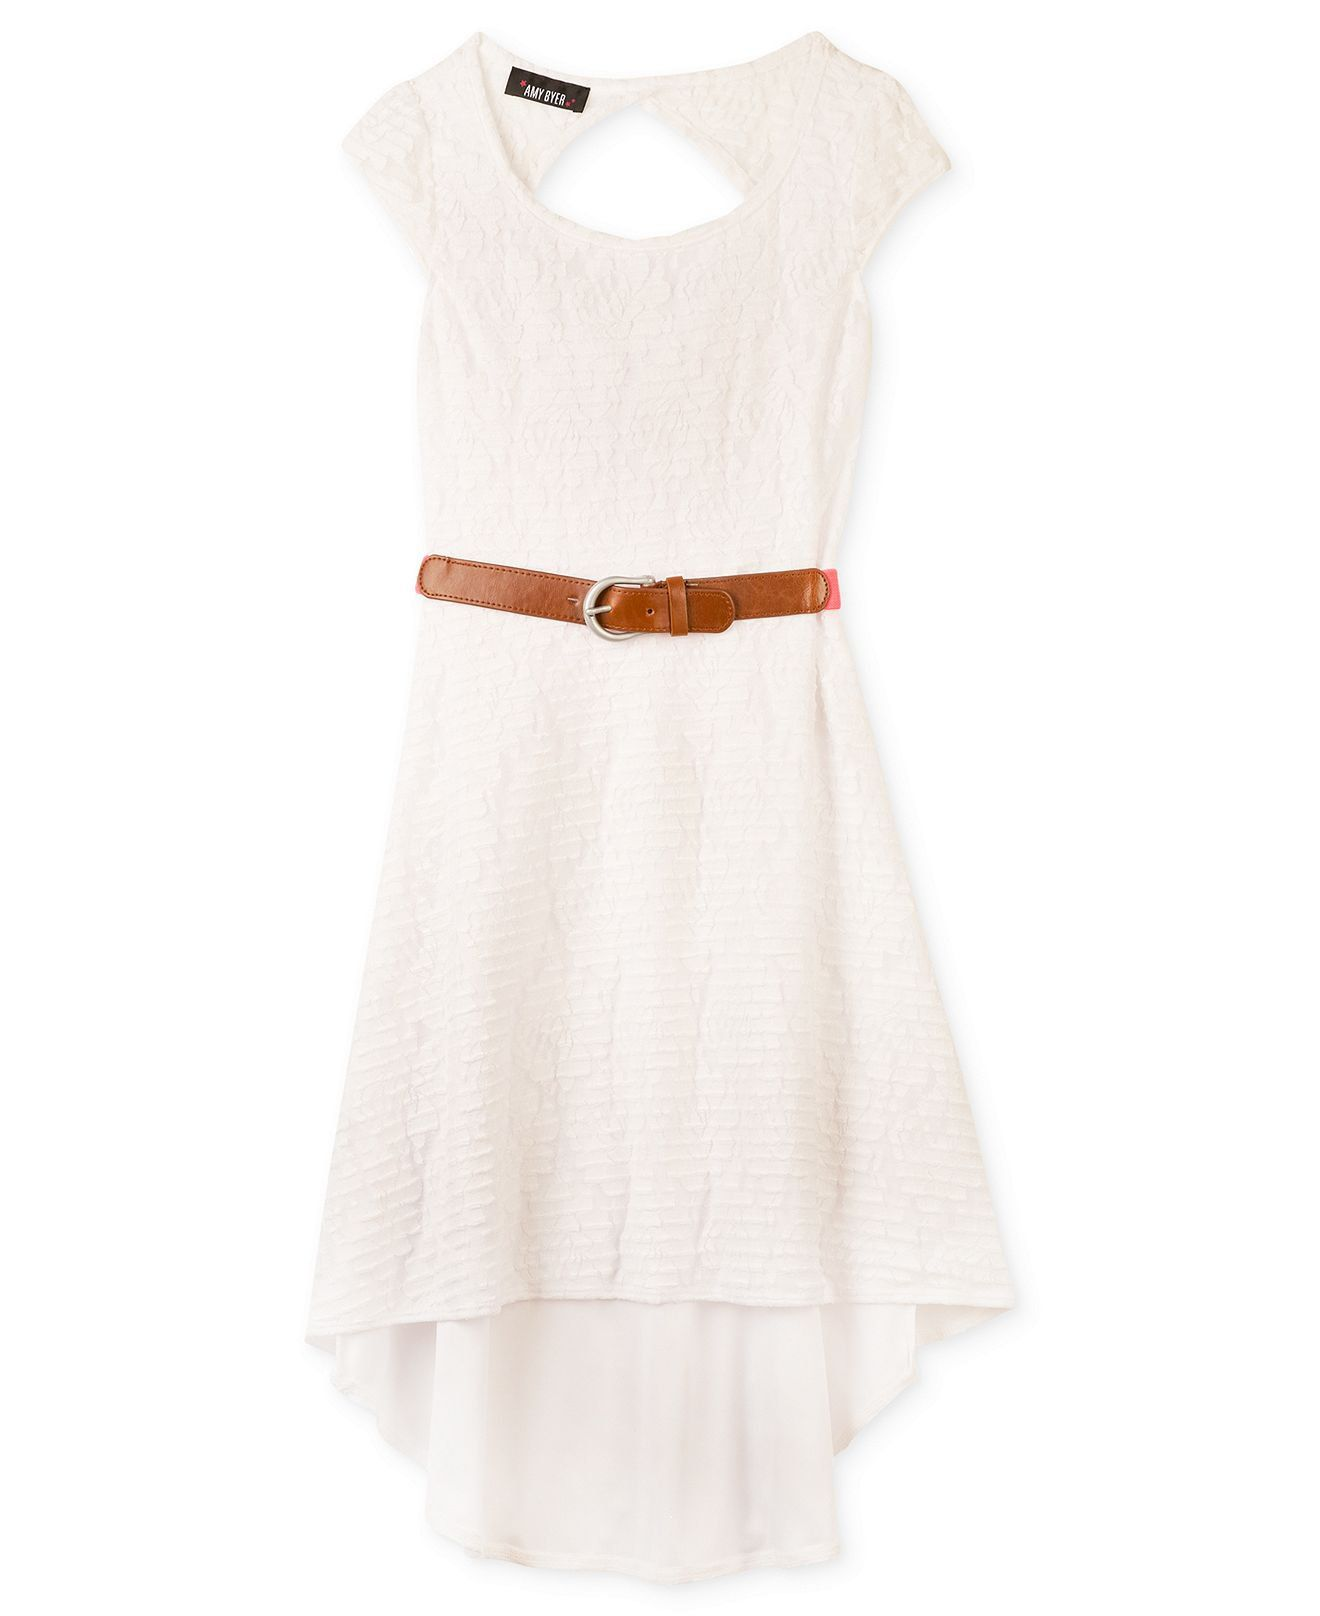 Girls high-low hem chiffon dress | Dresses for girls, High low and ...